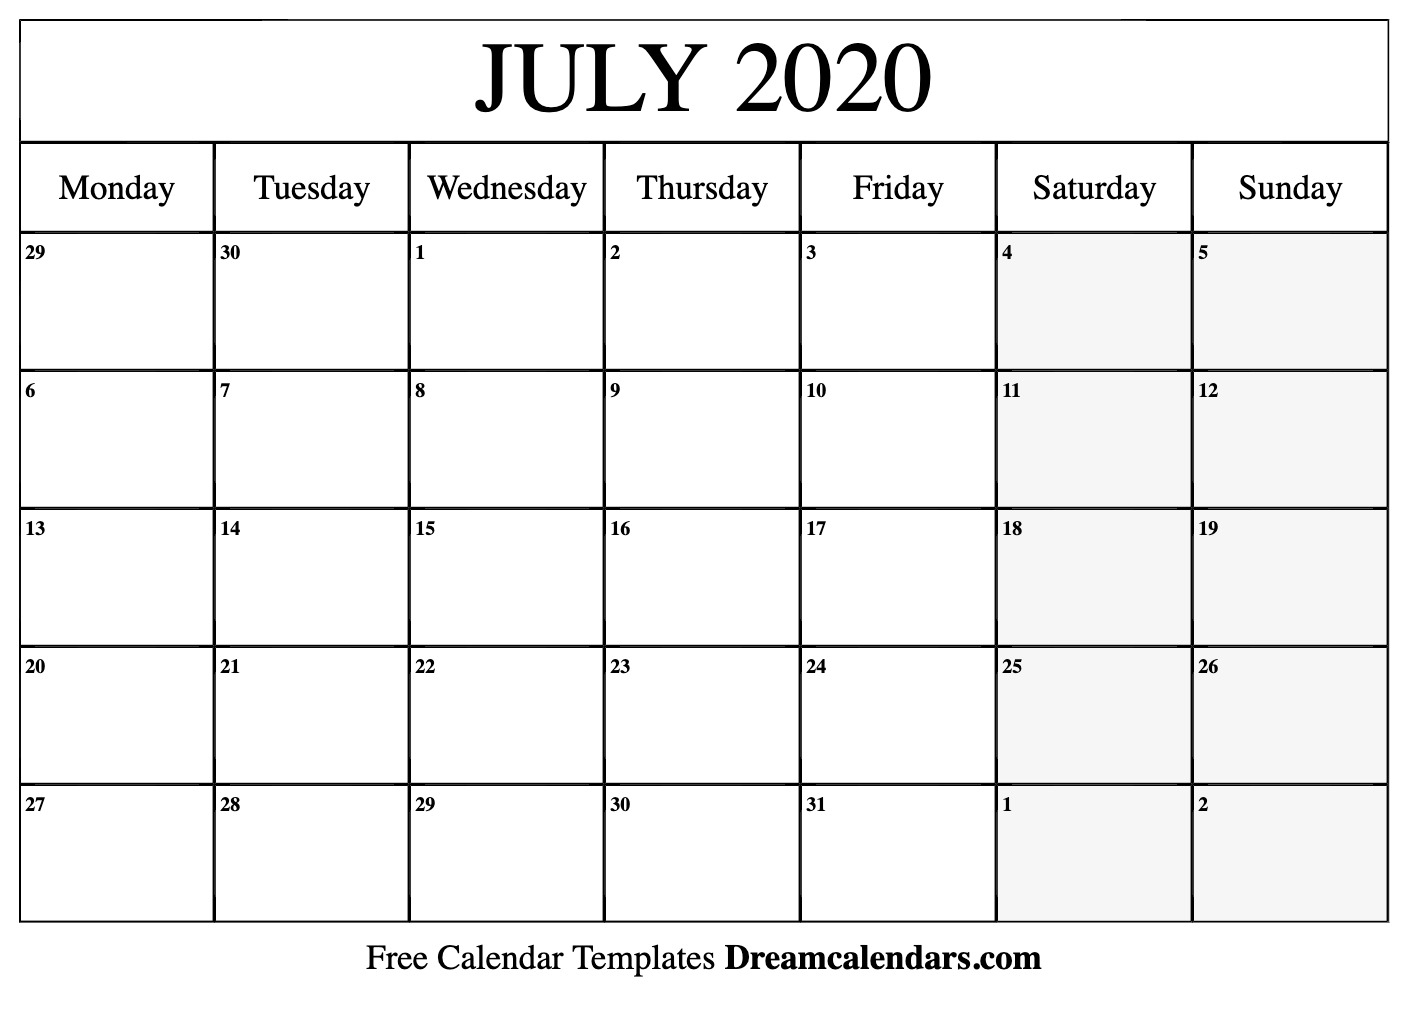 Printable July 2020 Calendar throughout 2020 Calender I Can Edit